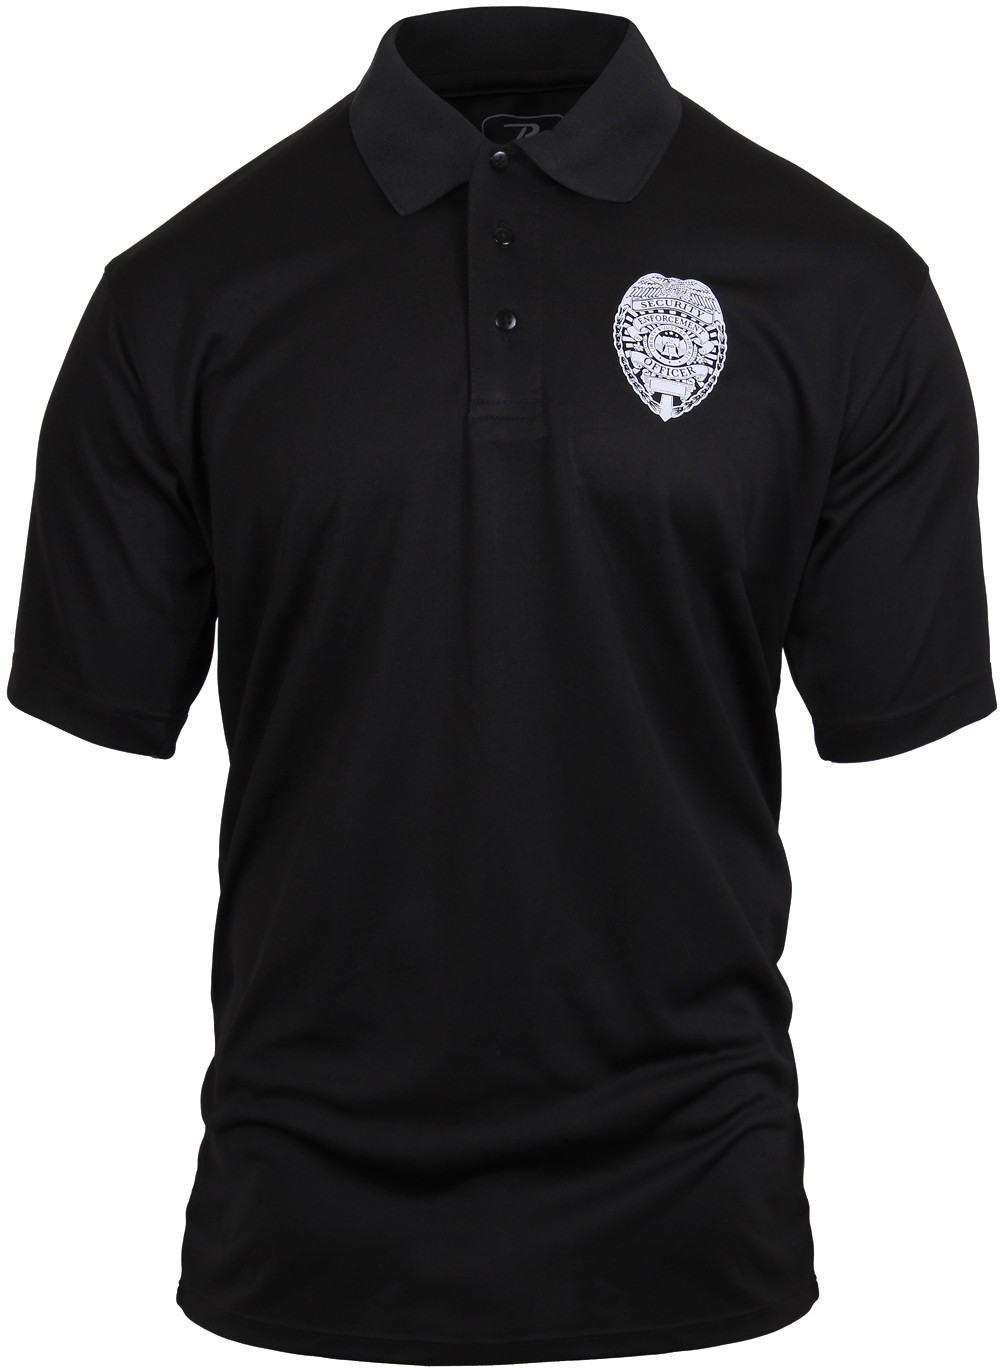 Black moisture wicking security enforcement officer double for Moisture wicking golf shirts